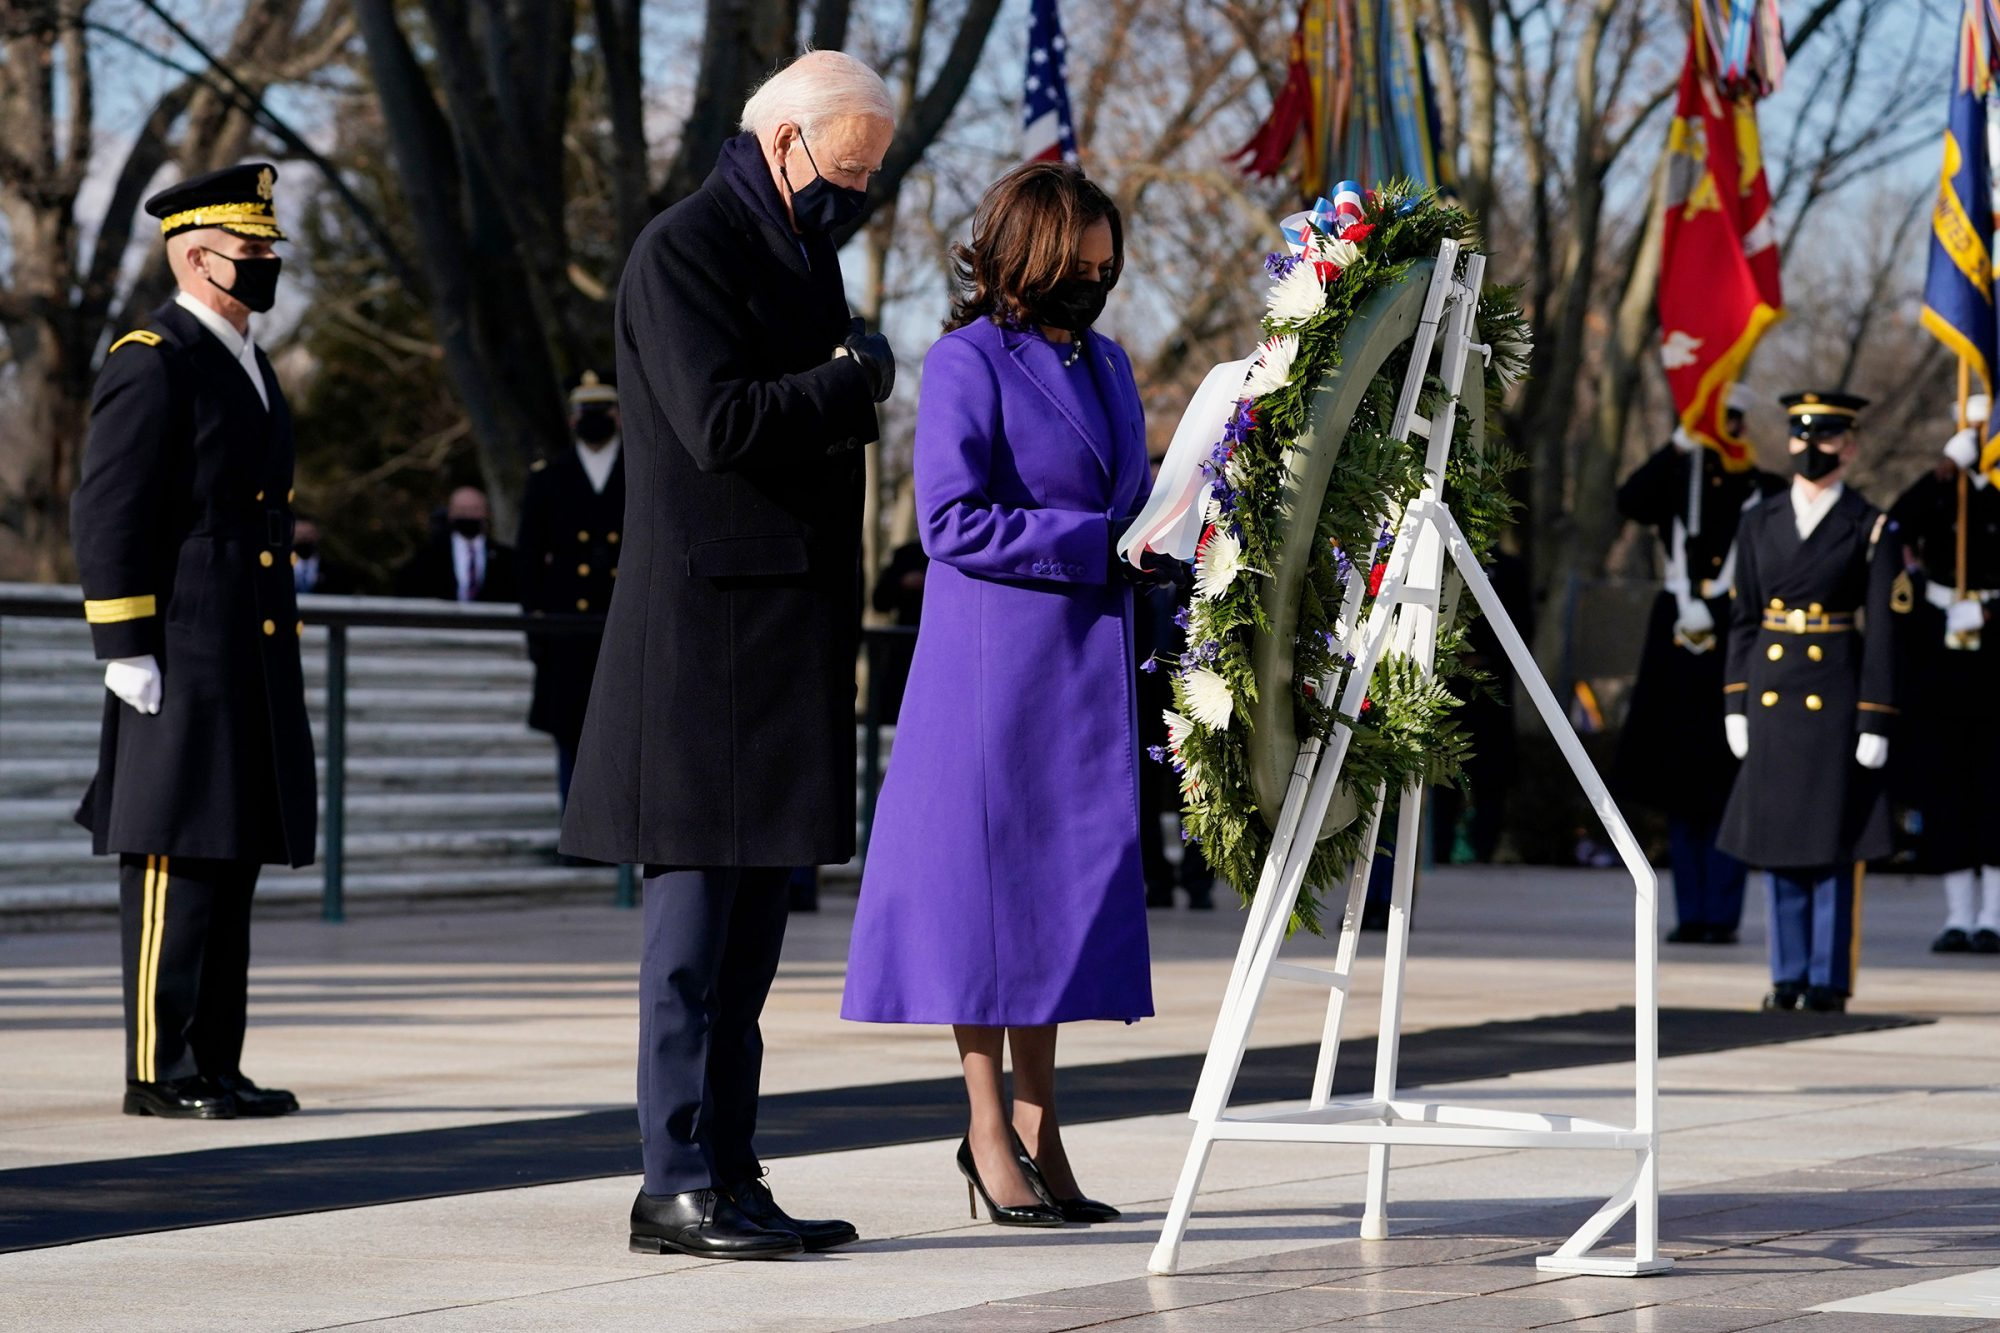 President Joe Biden and Vice President Kamala Harris participate in a wreath laying ceremony at the Tomb of the Unknown Soldier at Arlington National Cemetery in Arlington, Va Biden Inauguration, Arlington, United States - 20 Jan 2021